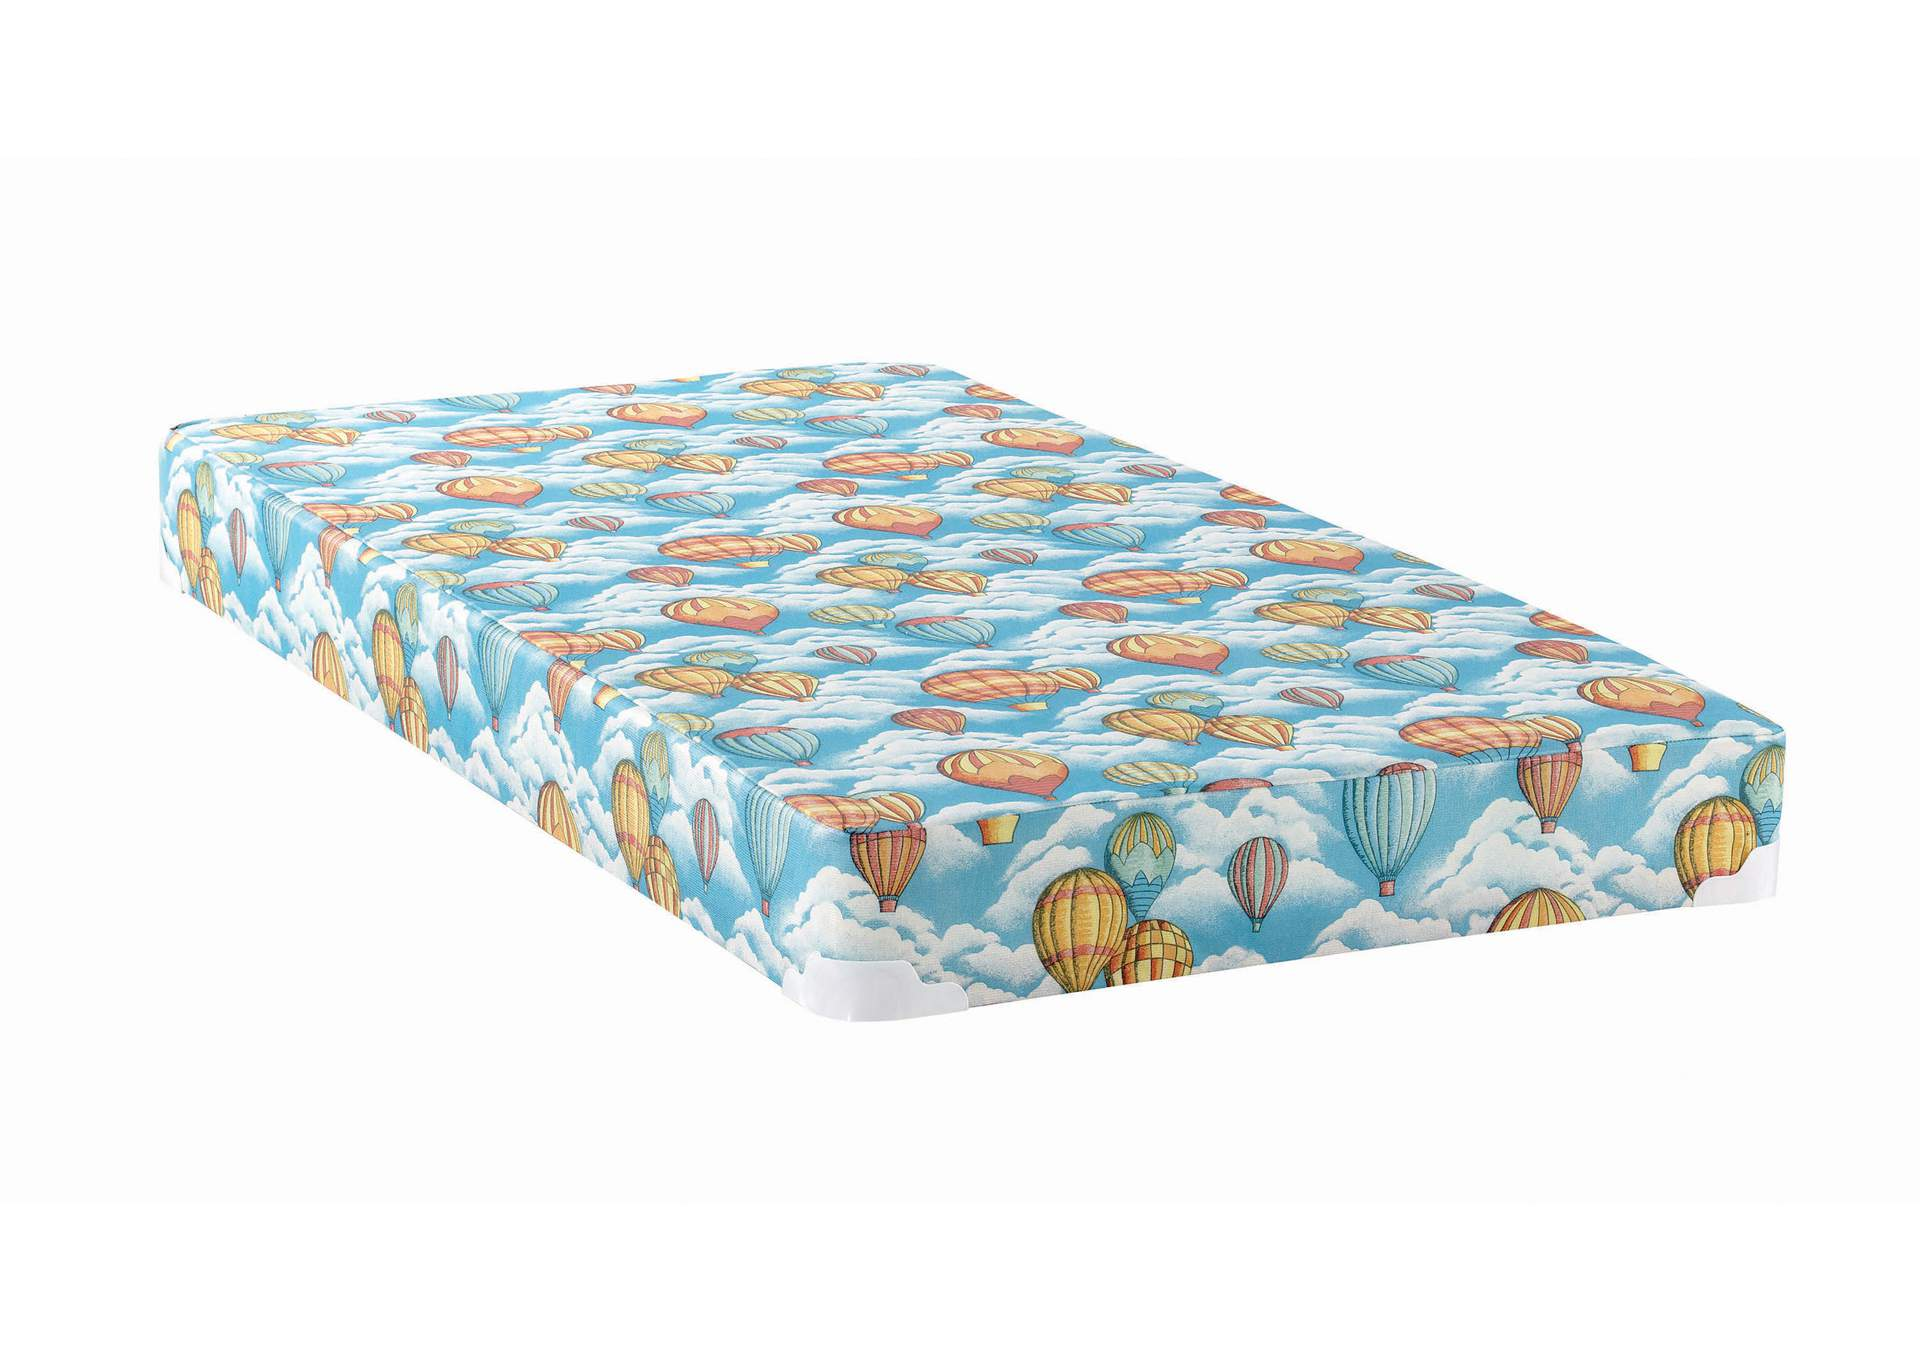 Botticelli Balloon Blue Patterned Full Mattress,Coaster Furniture